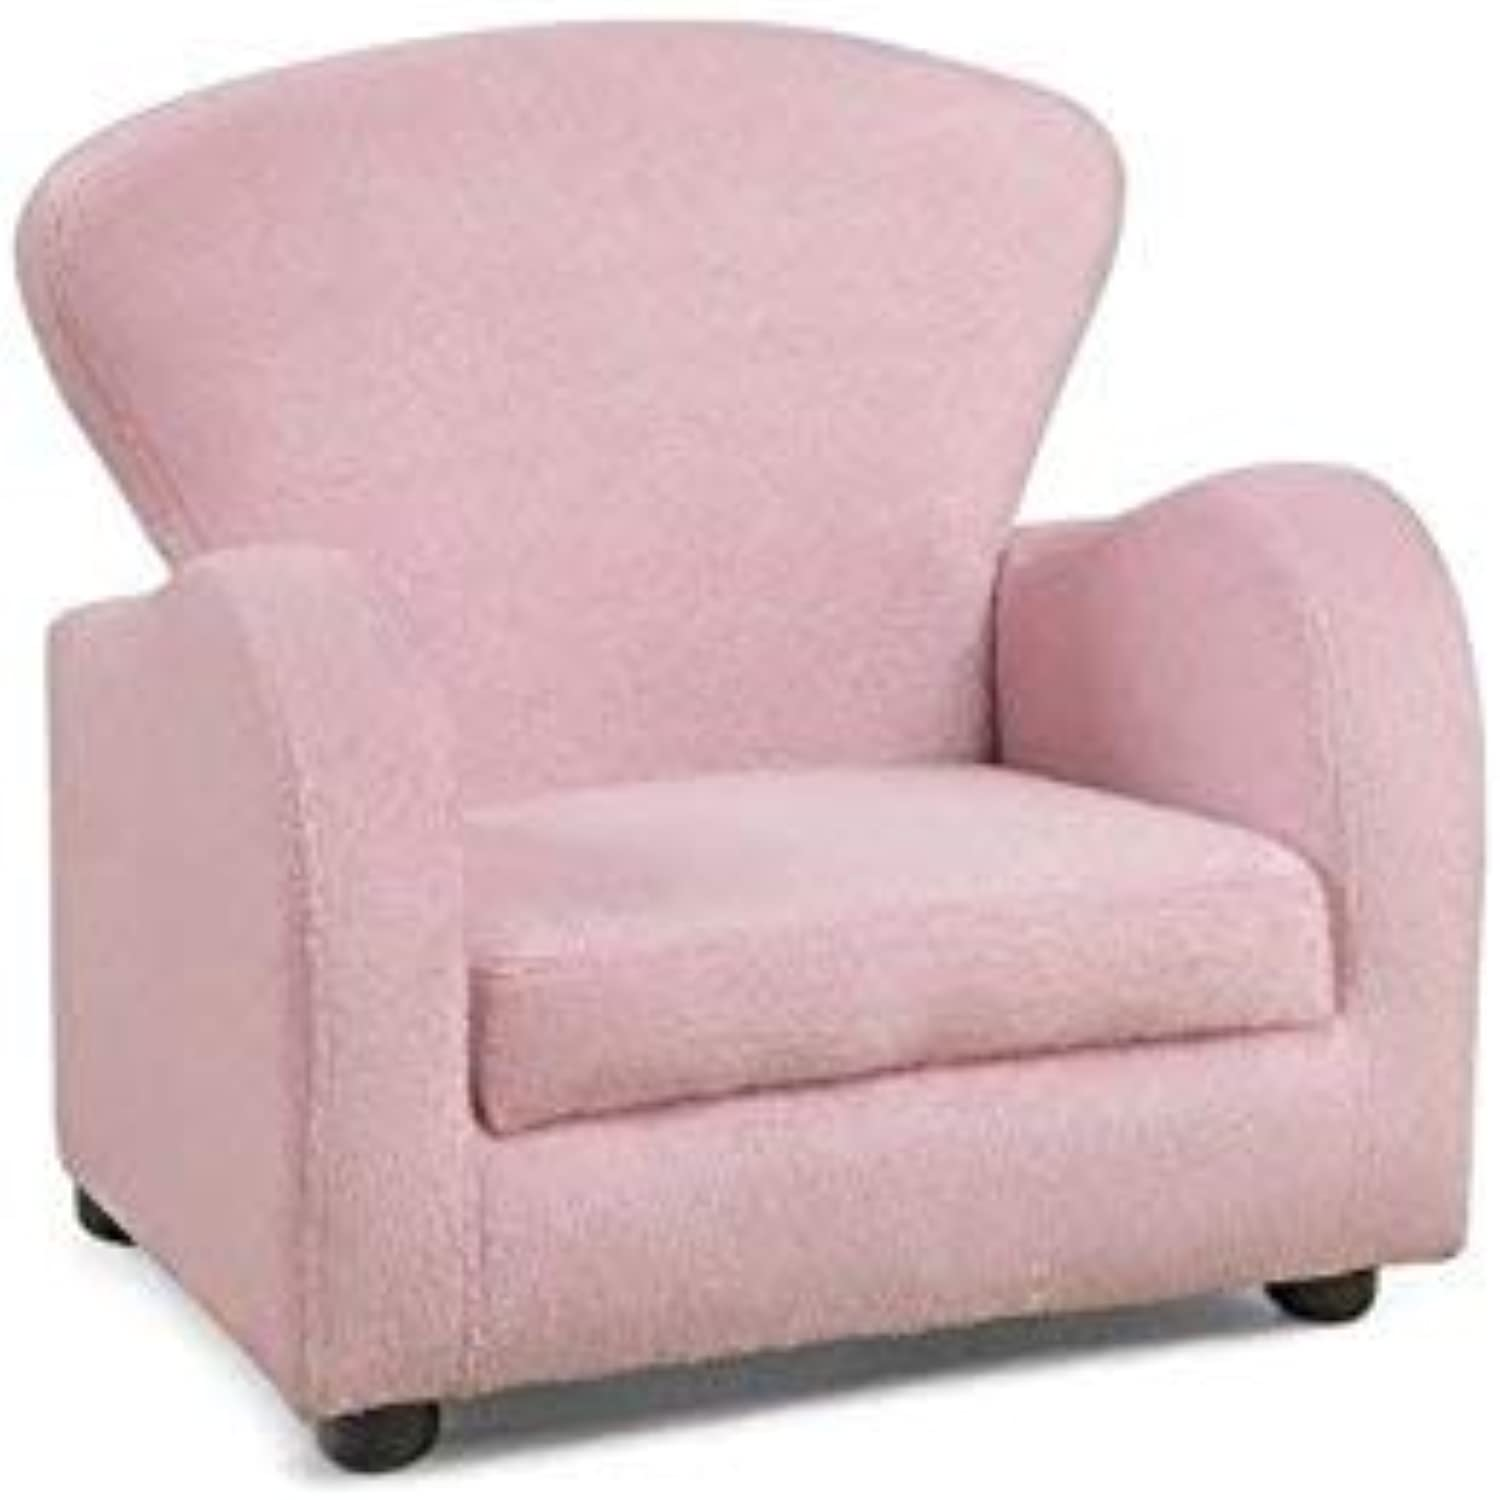 Monarch Specialties I 8142 Juvenile Chair, Pink